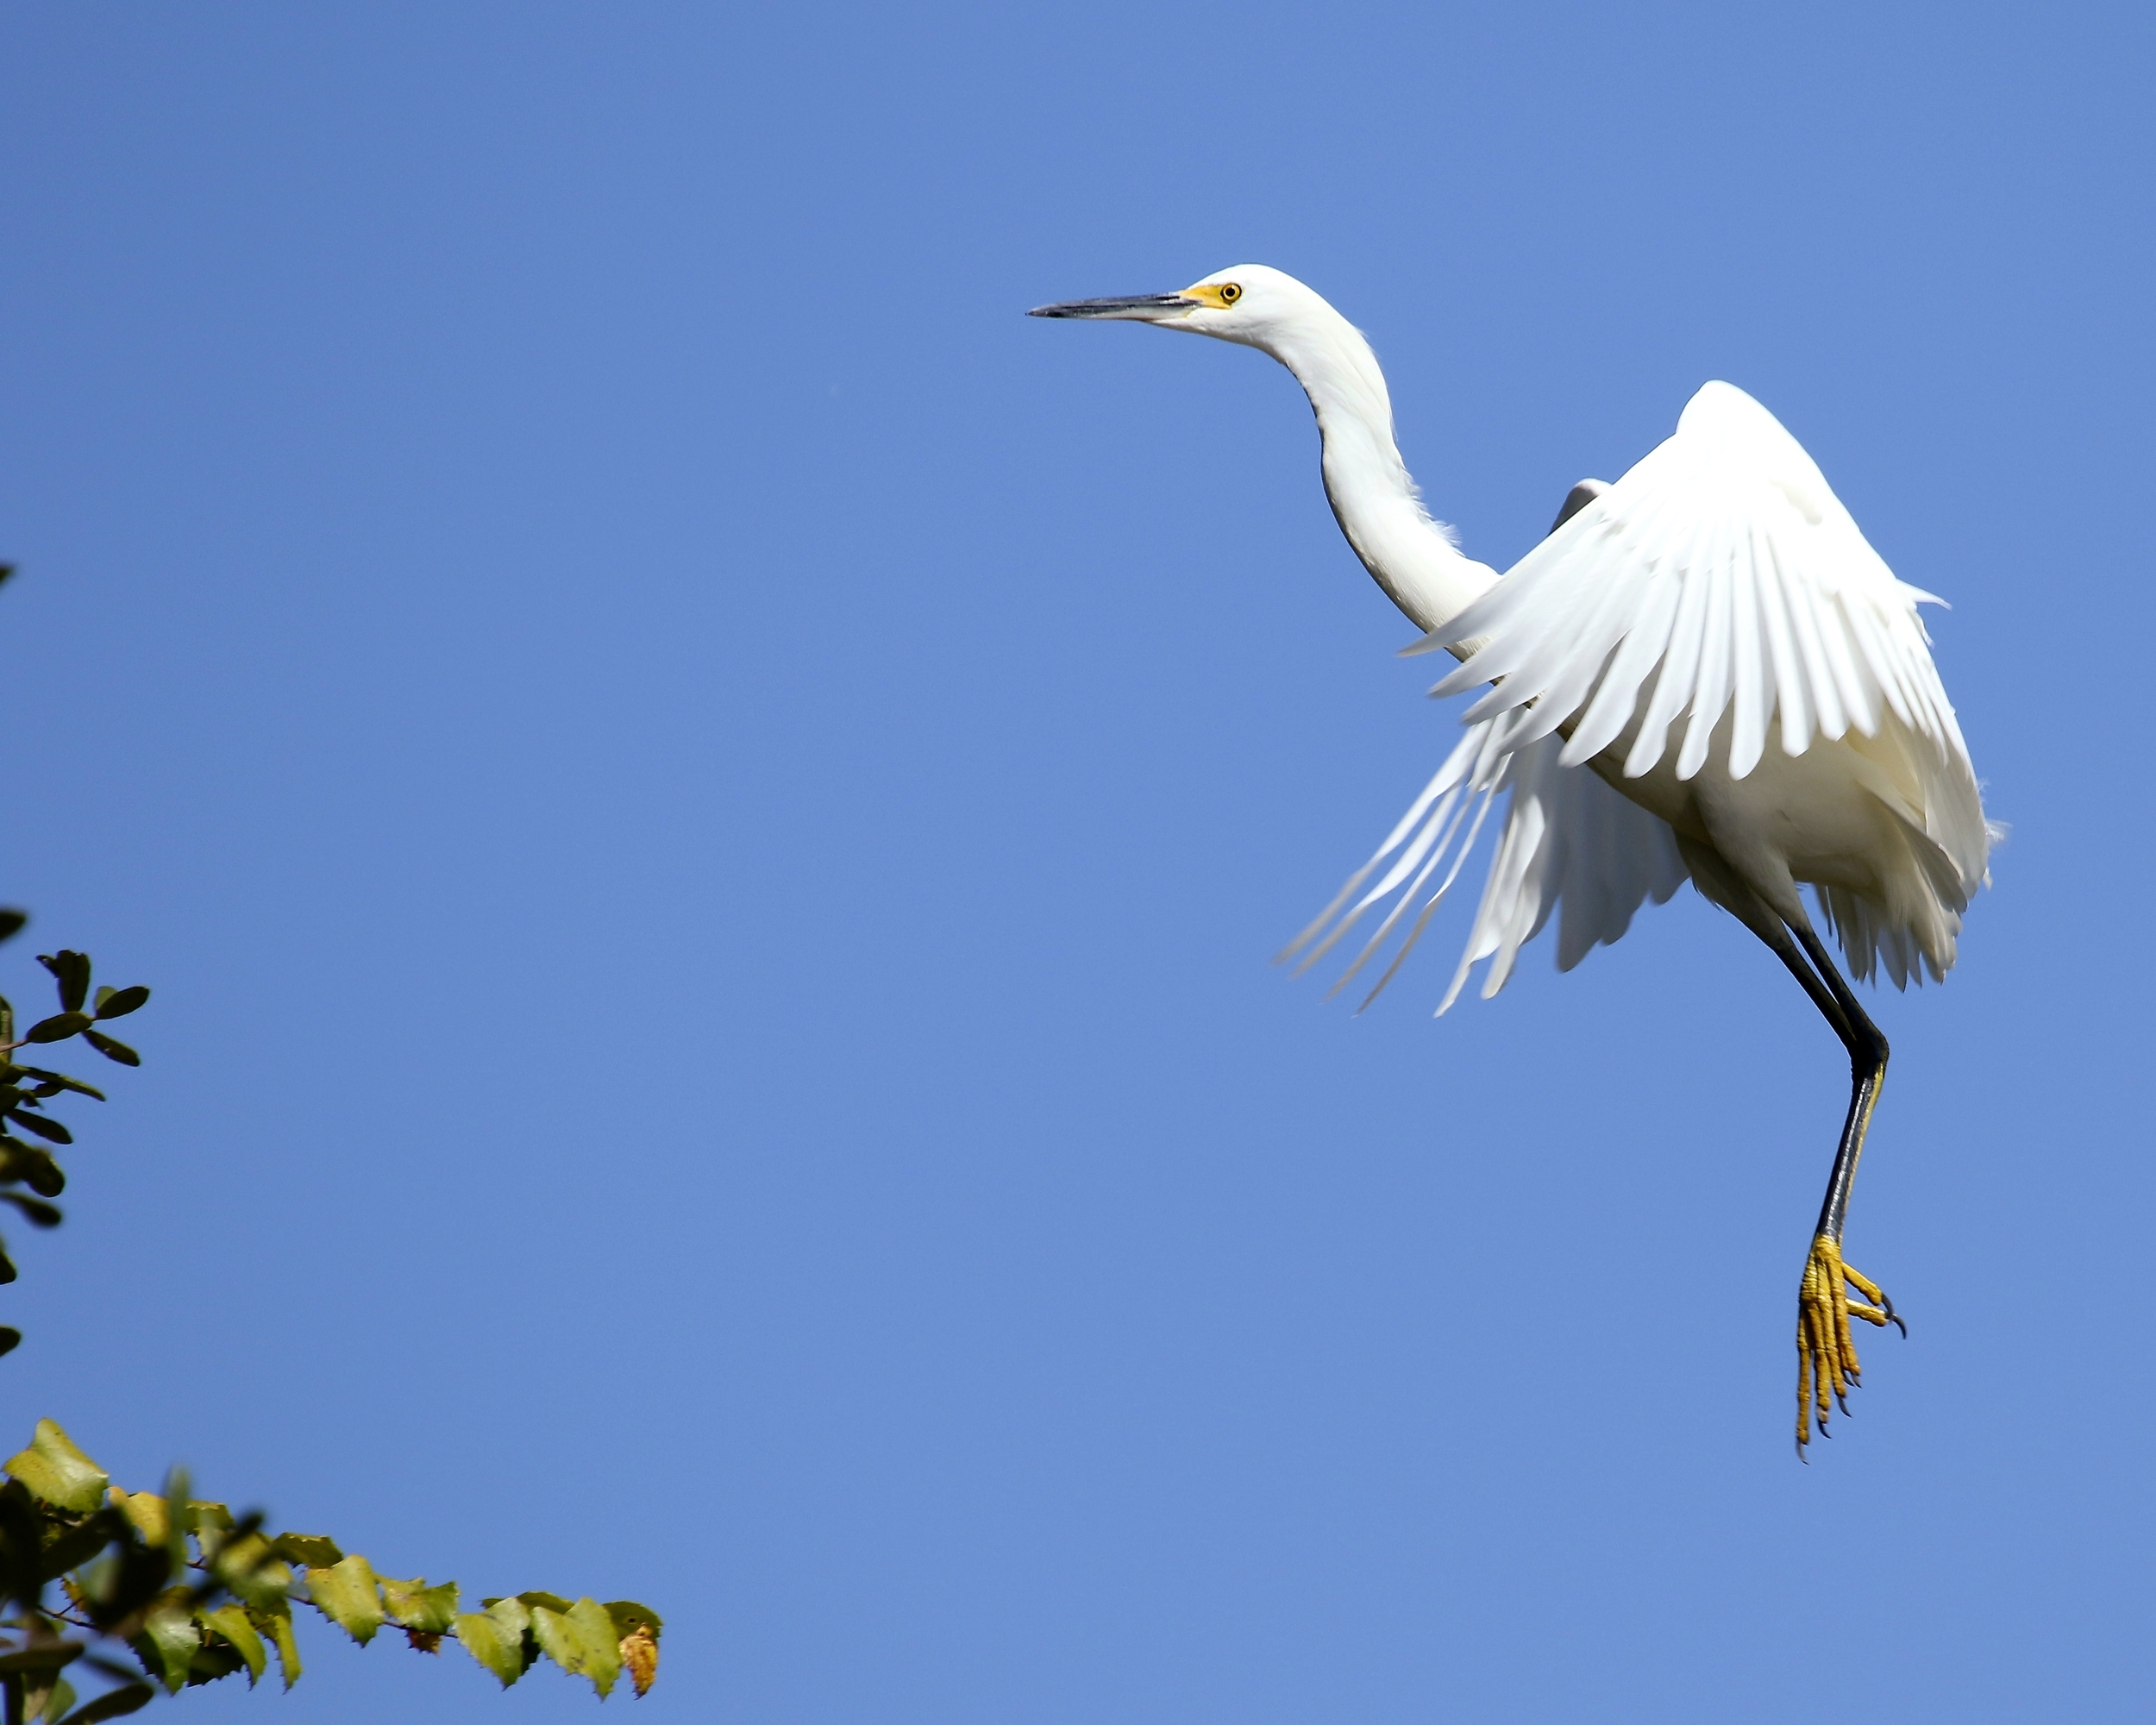 The Snowy Egret takes flight then quickly returns to the hideout..